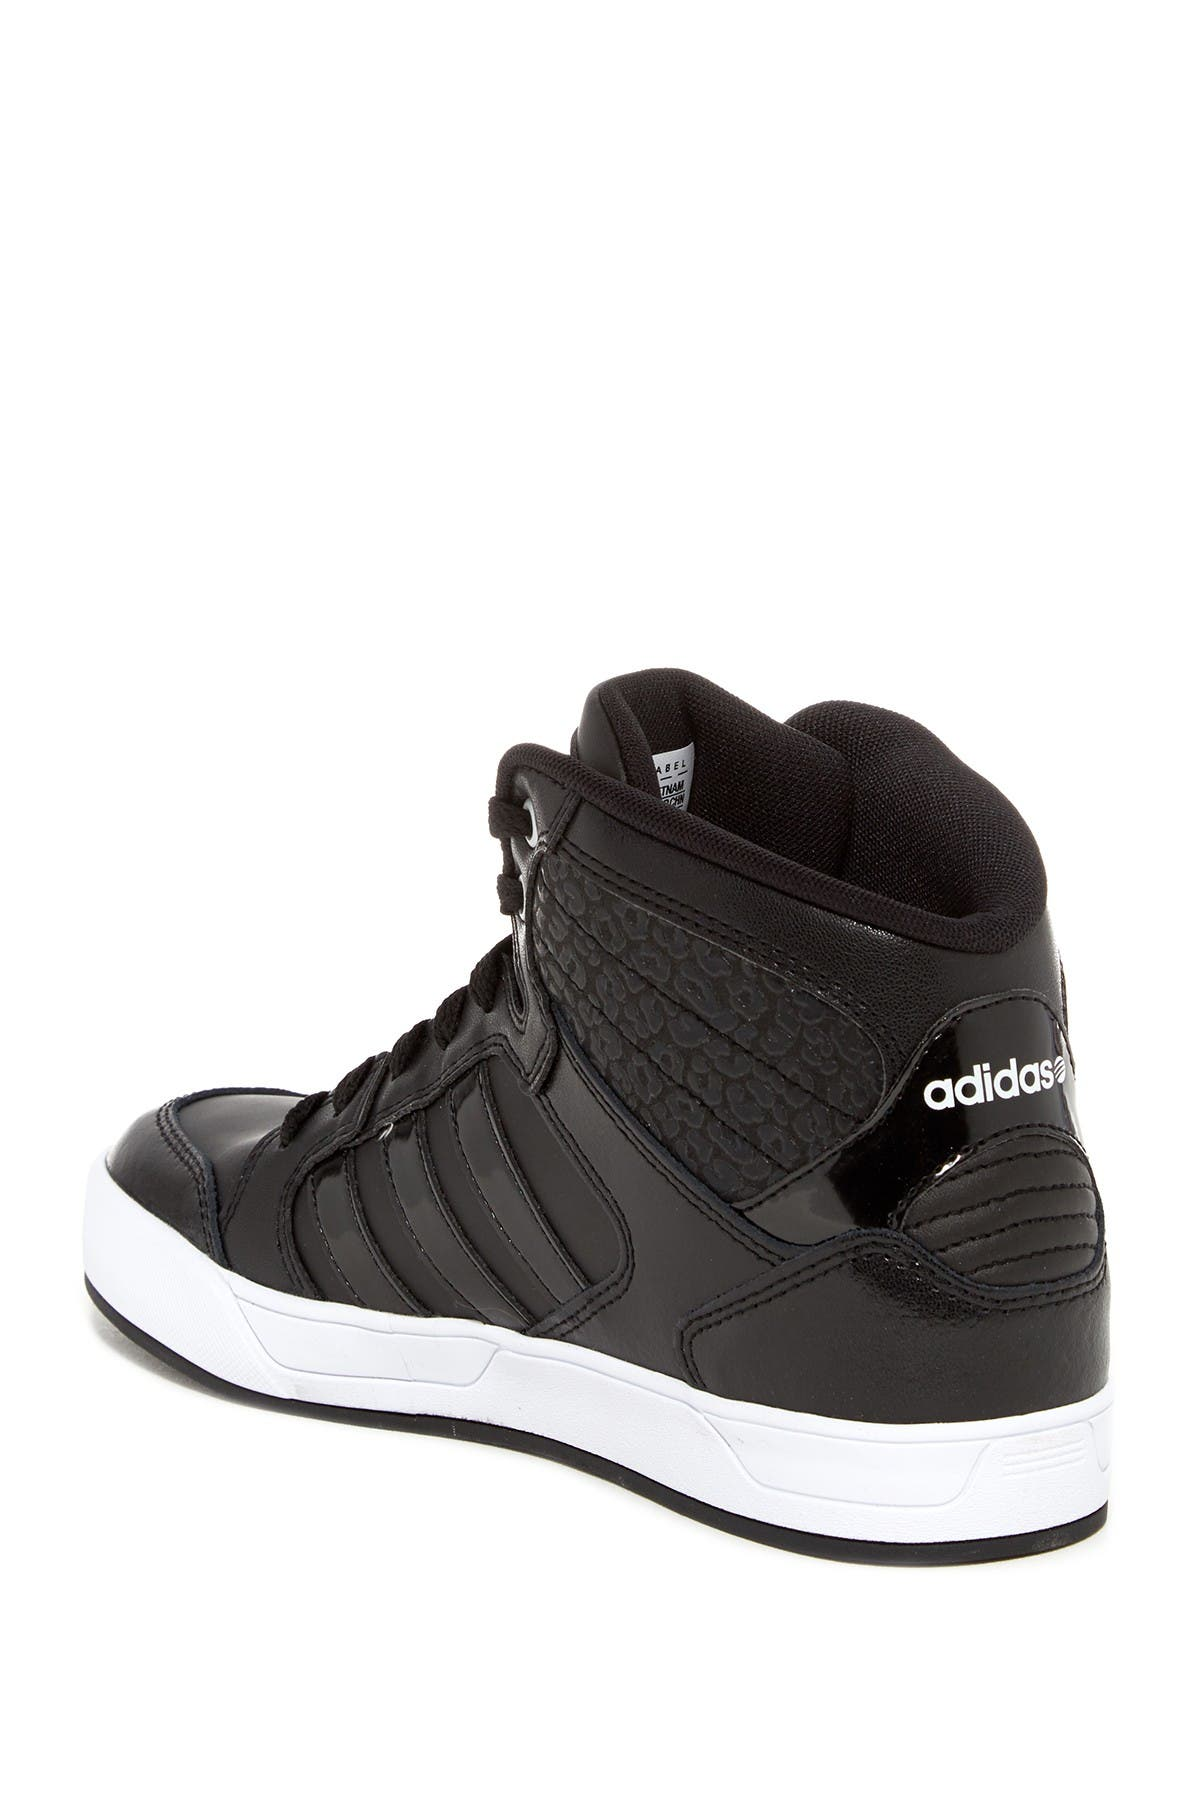 Image of adidas BBNeo Raleigh Hi-Top Sneaker